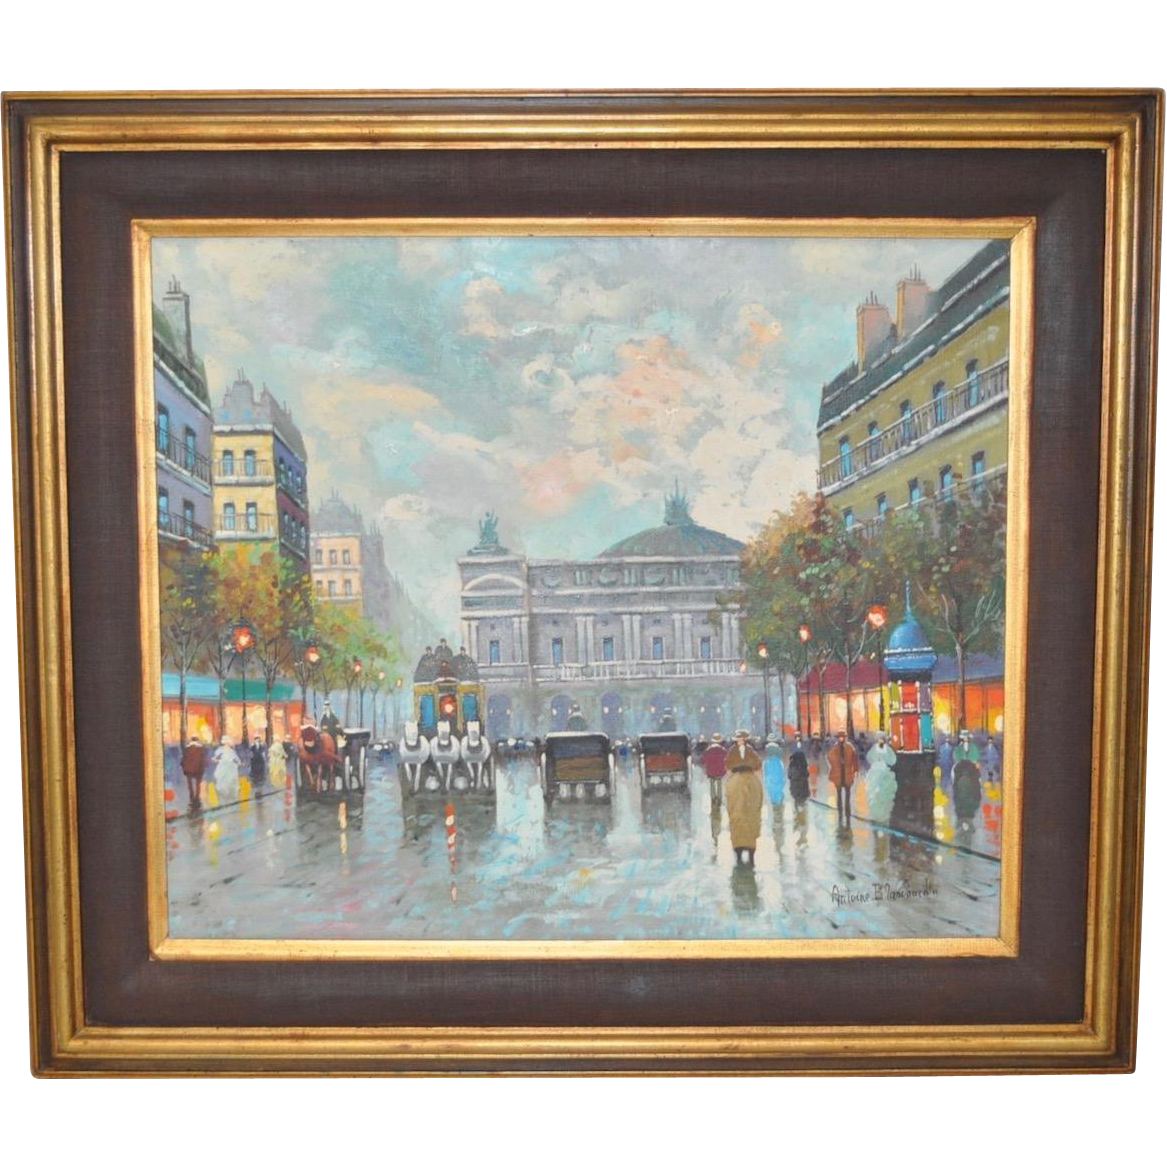 Parisian Street Scene Oil Painting From Antique Canvas On